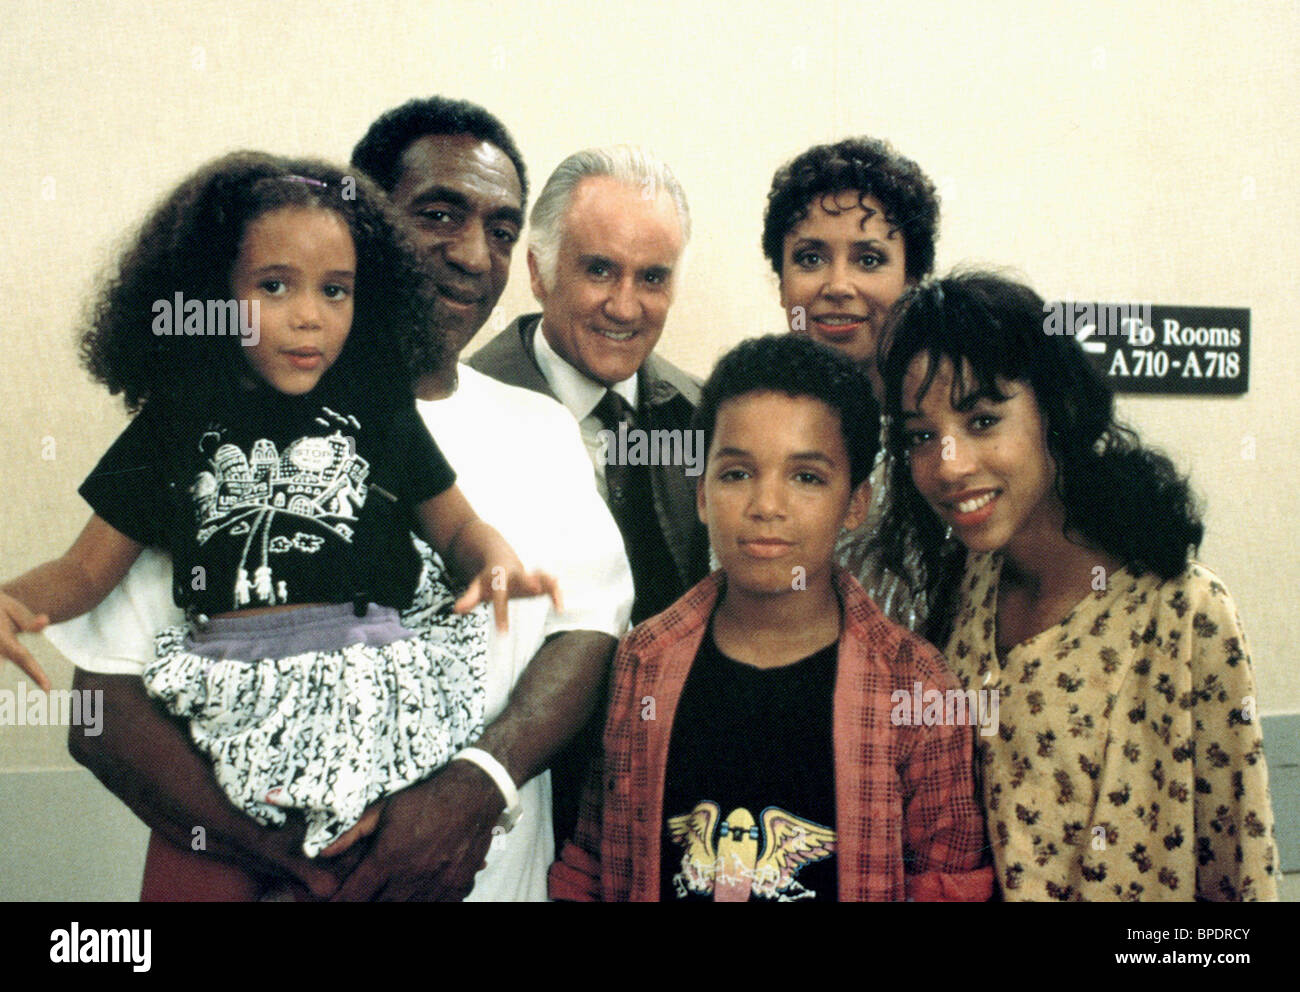 Bill cosby family photos - Bill Cosby Ian Bannen Kimberly Russell Salim Grant Brooke Fontaine Ghost Dad 1990